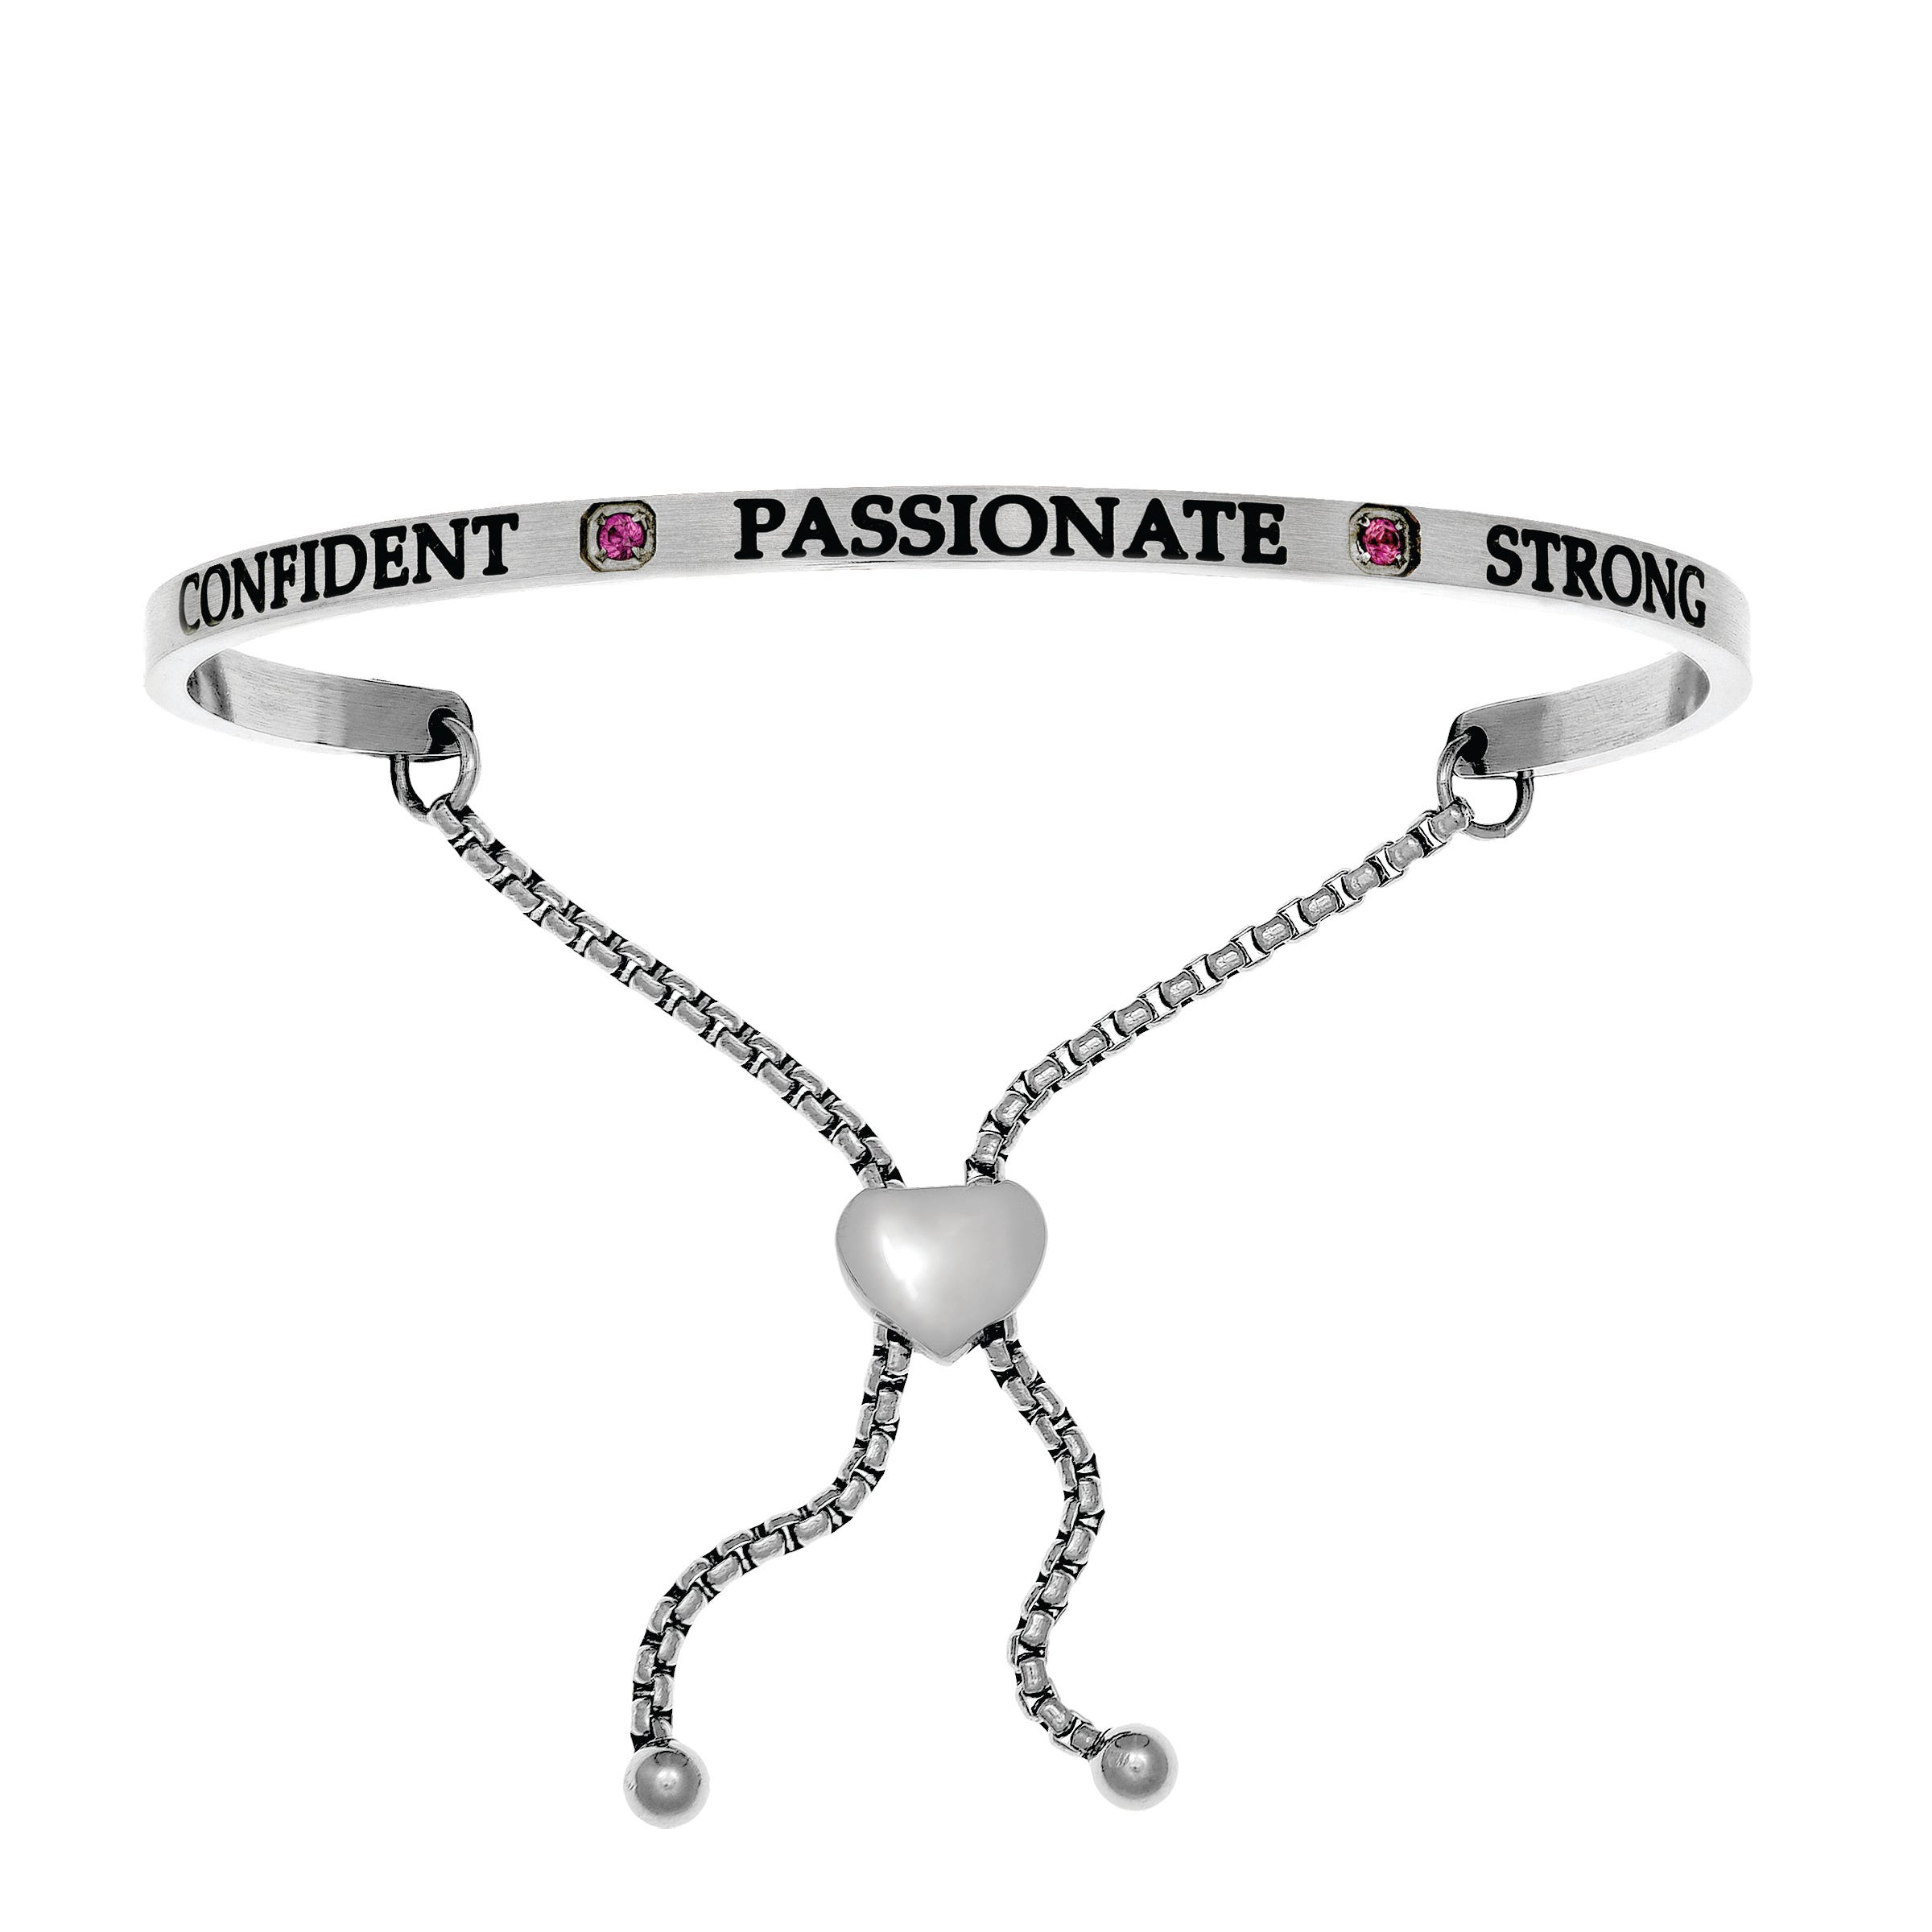 Confident & Passionate July. Intuitions Bolo Bracelet in White Stainless Steel